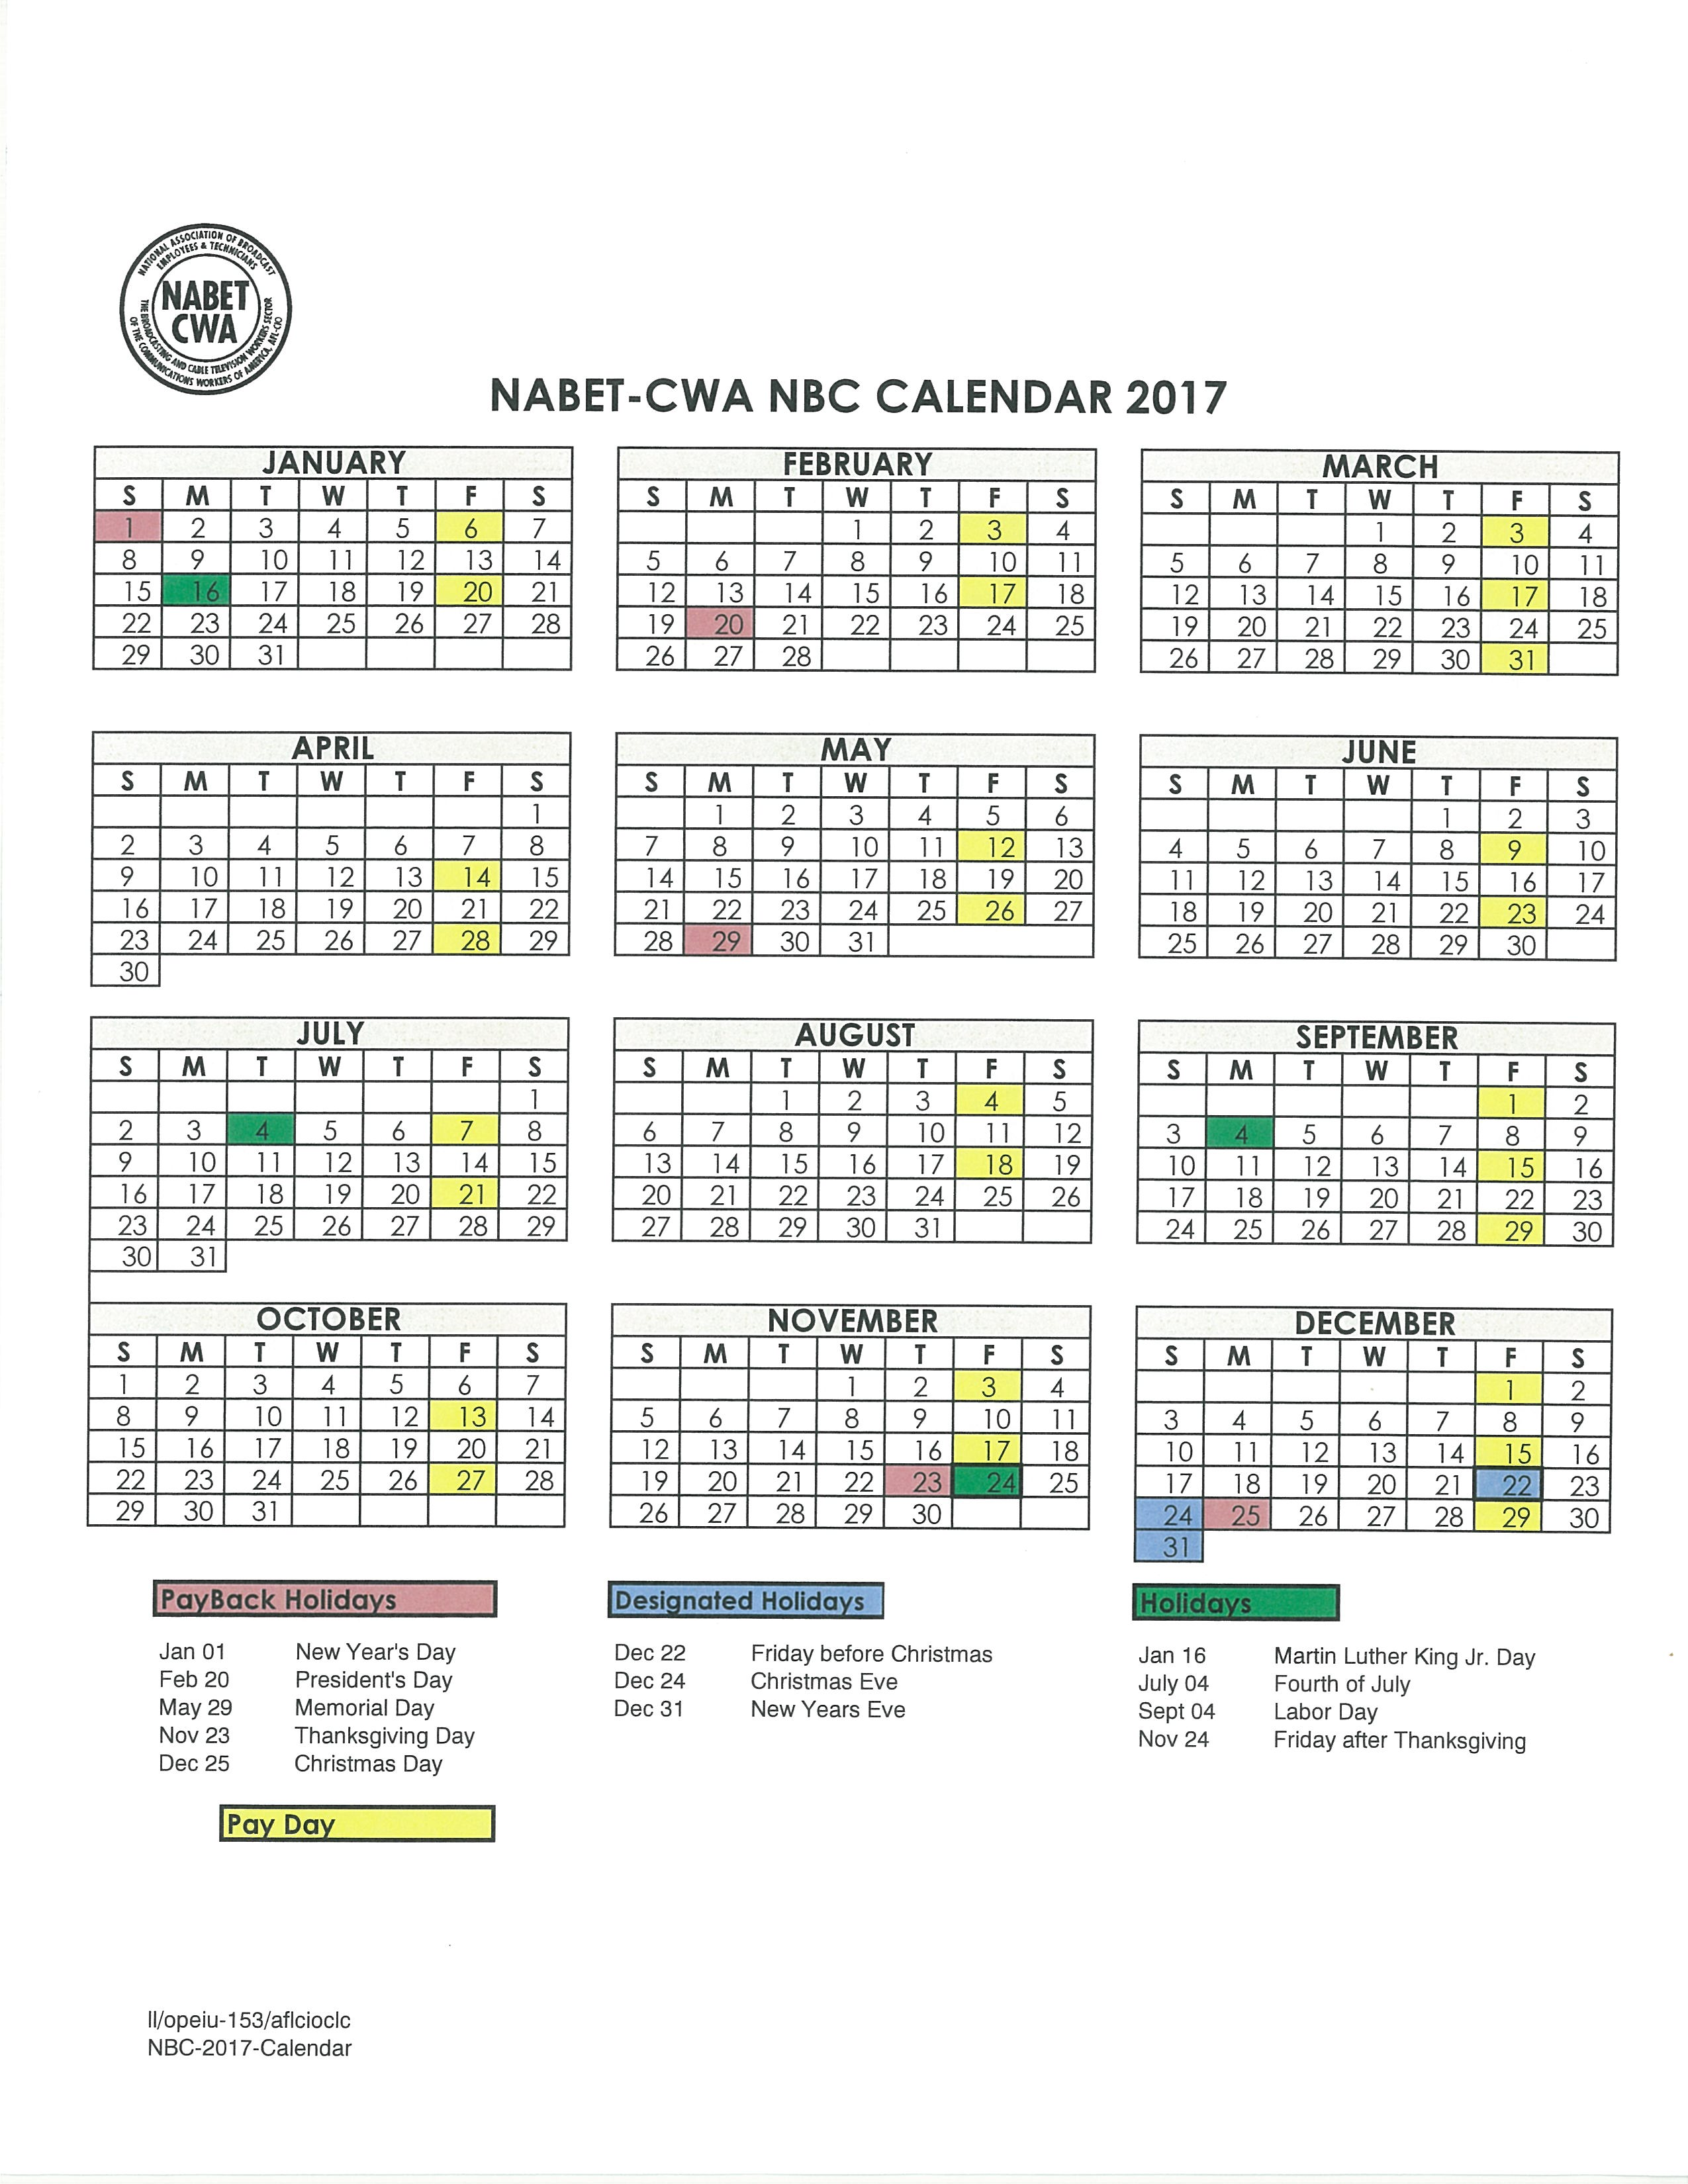 NBC VACATION CALENDAR 2016